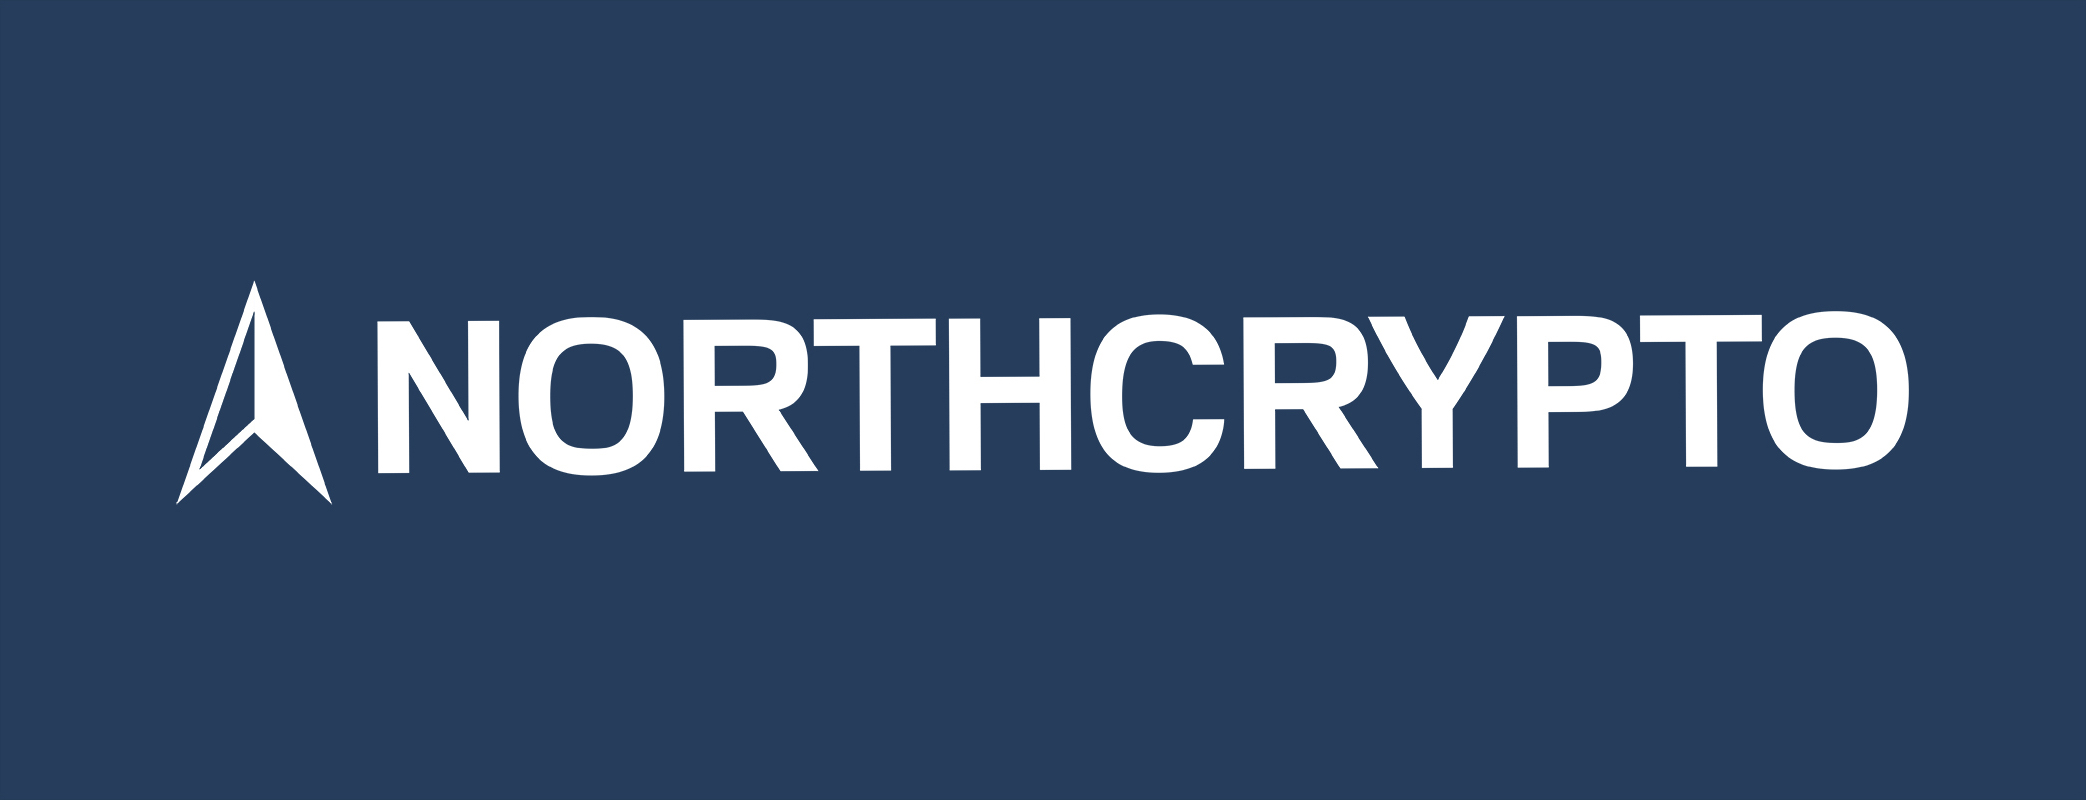 Monthly savings are now possible at Northcrypto